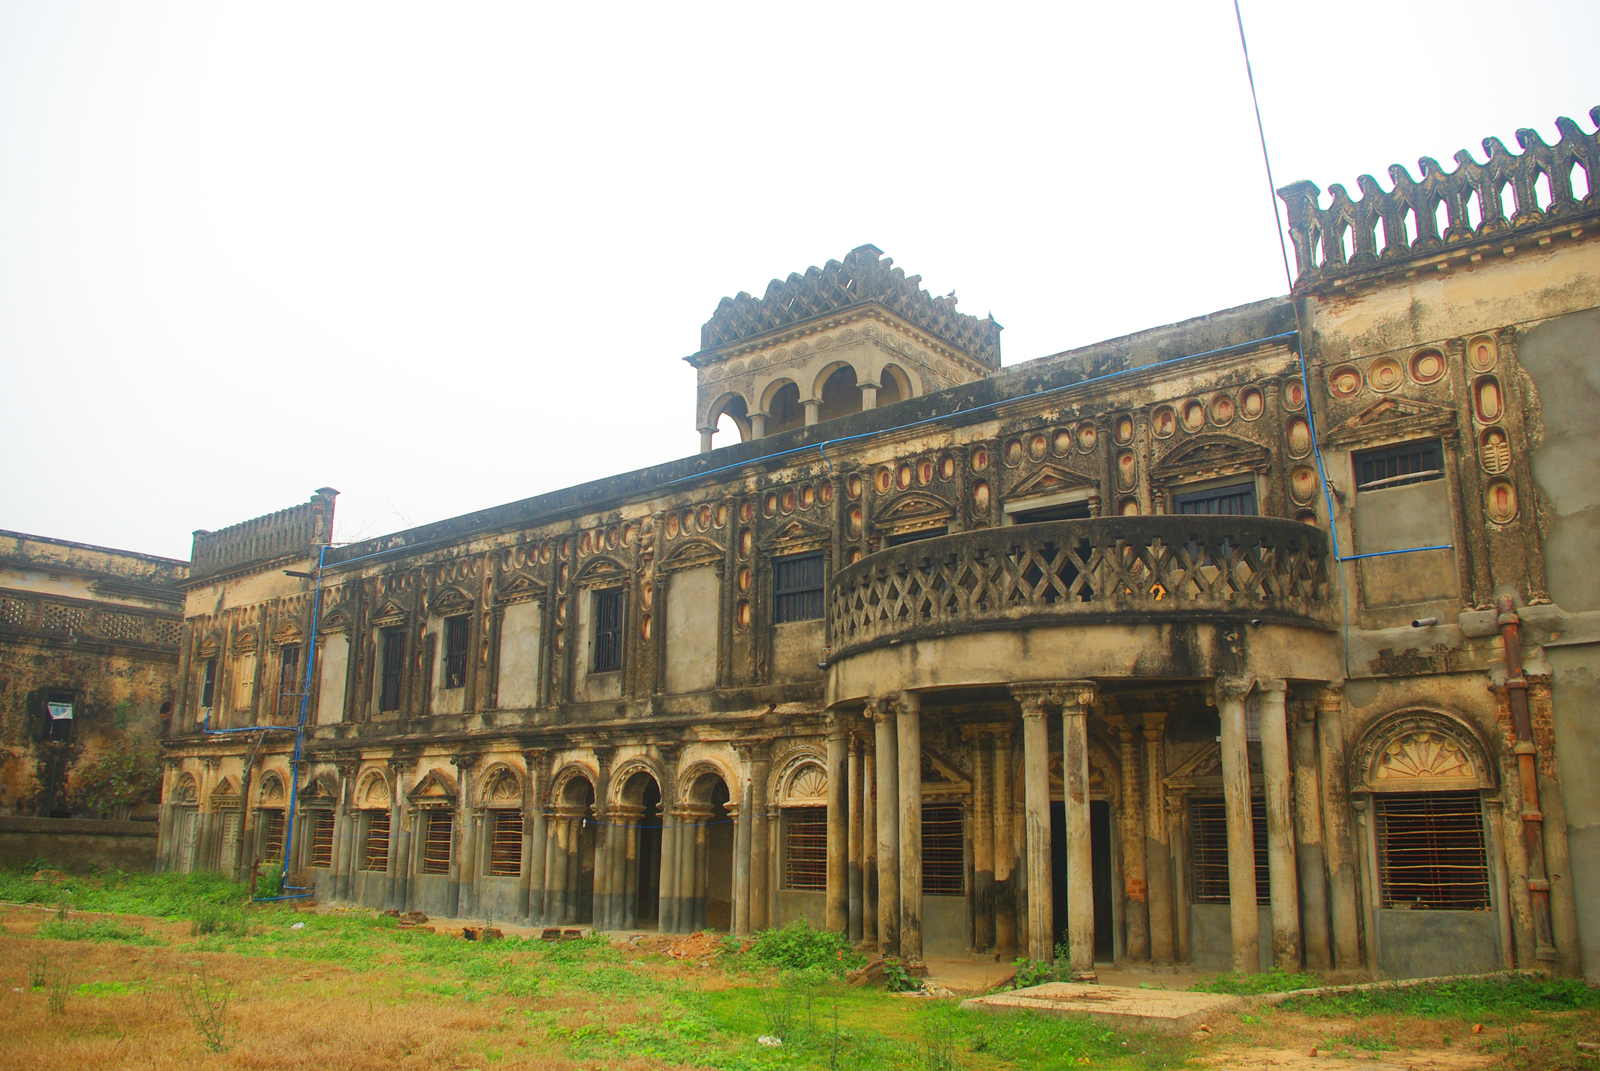 Ray mansion in kalikapur photo by Amitabha Gupta